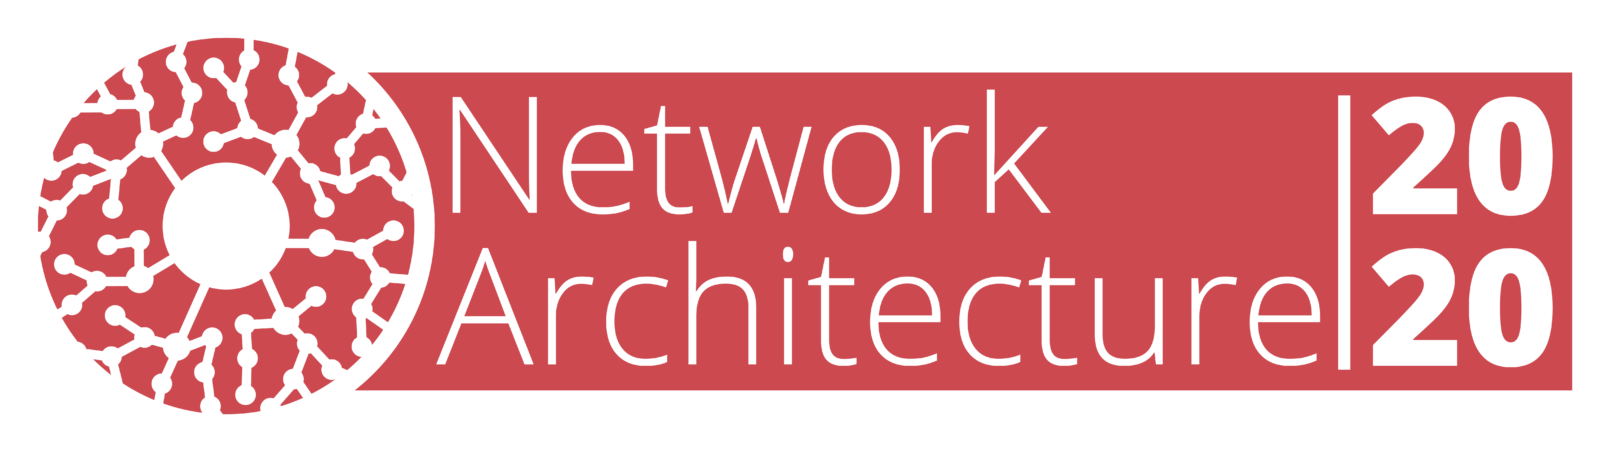 Network Architecture 2020 2 Large